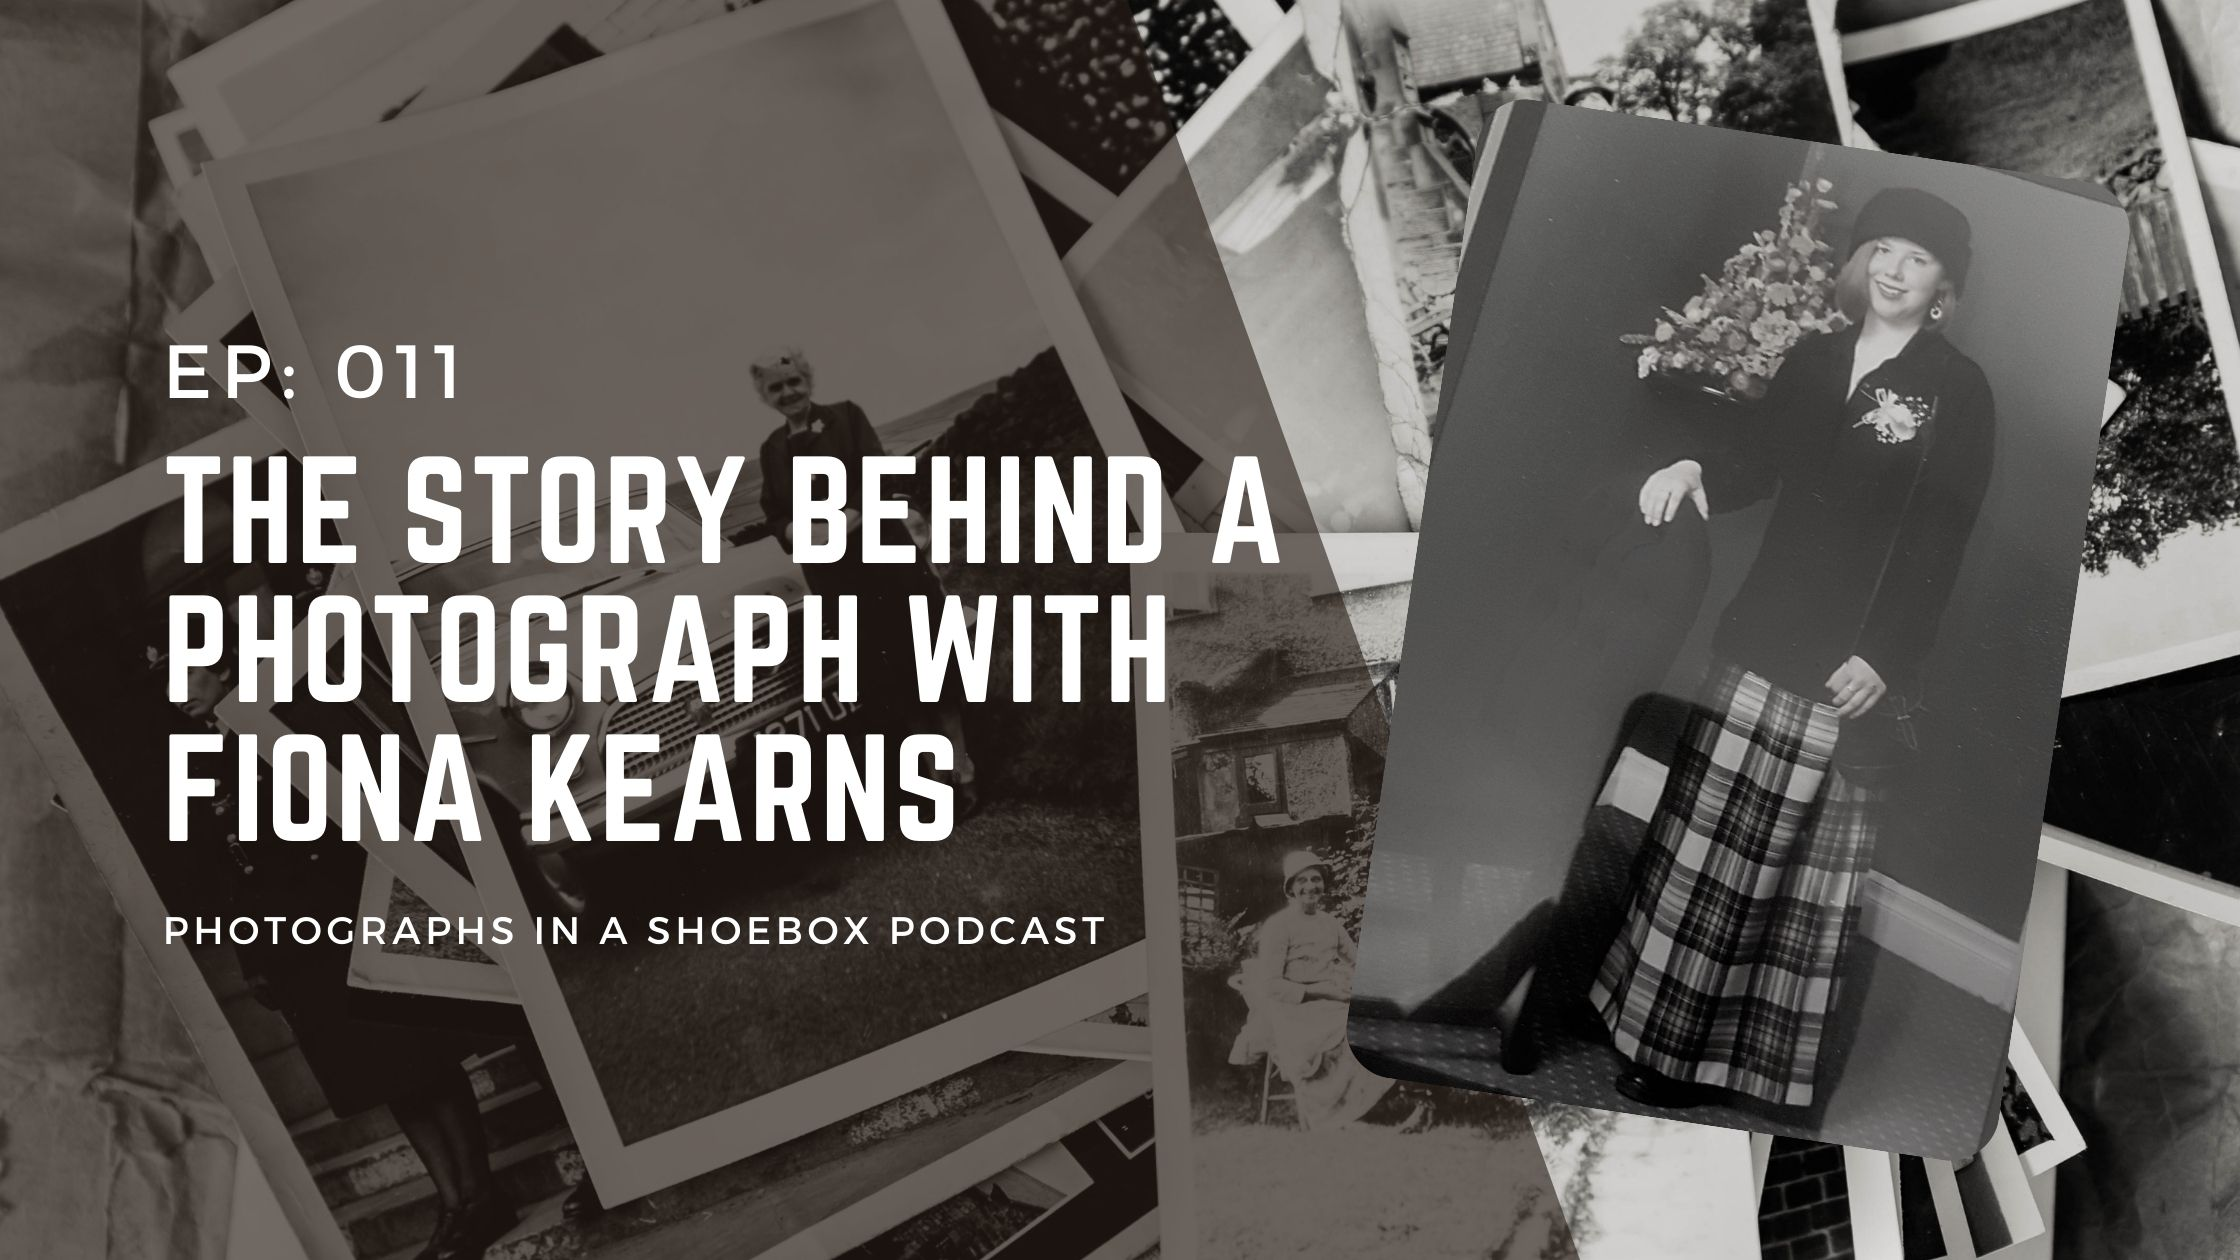 Podcast title image the story behind the photograph with Fiona Kearns